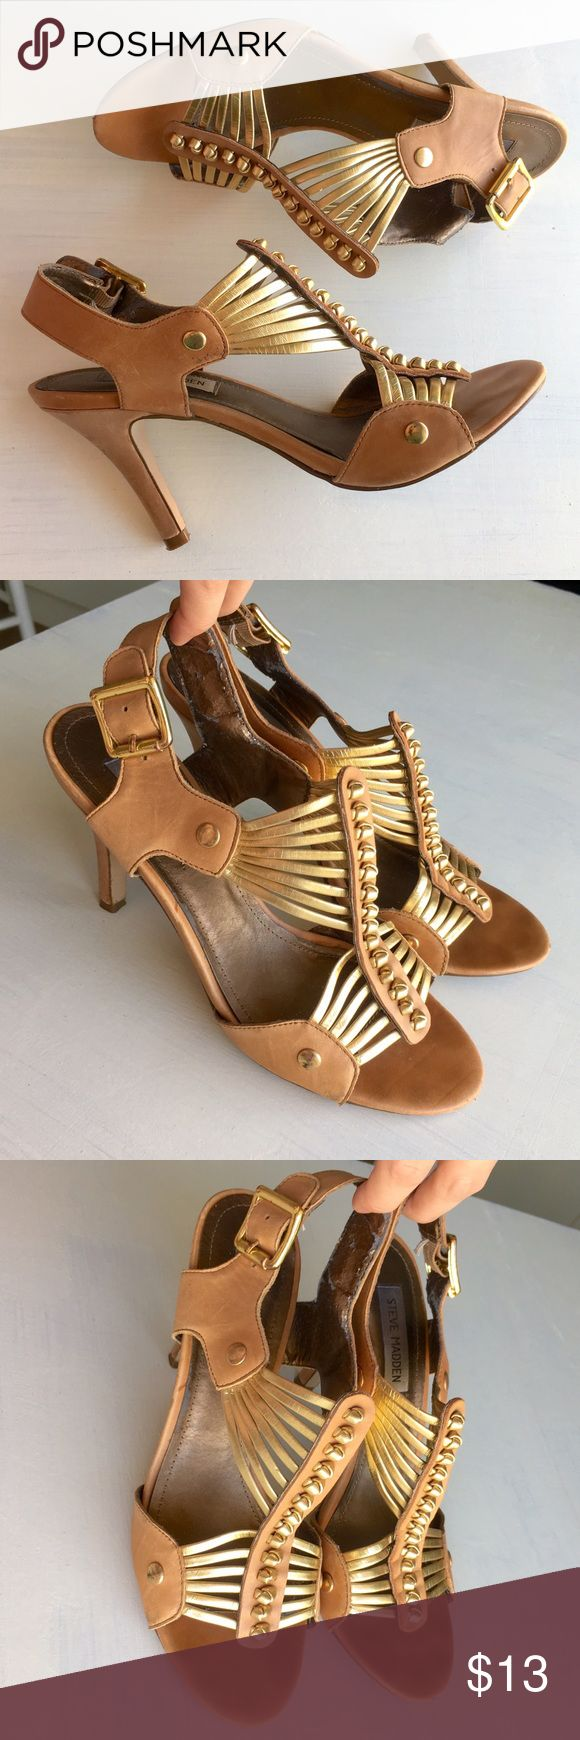 Steve Madden Sexy Strappy Gold Studded High Heels Steve Madden Strappy Gold Studded Boho Leather High Heels. Size 8.5. Used, but still awesome. The only flaw is on the inside of the straps. It's slightly peeling, but not noticeable when they are on. Steve Madden Shoes Heels